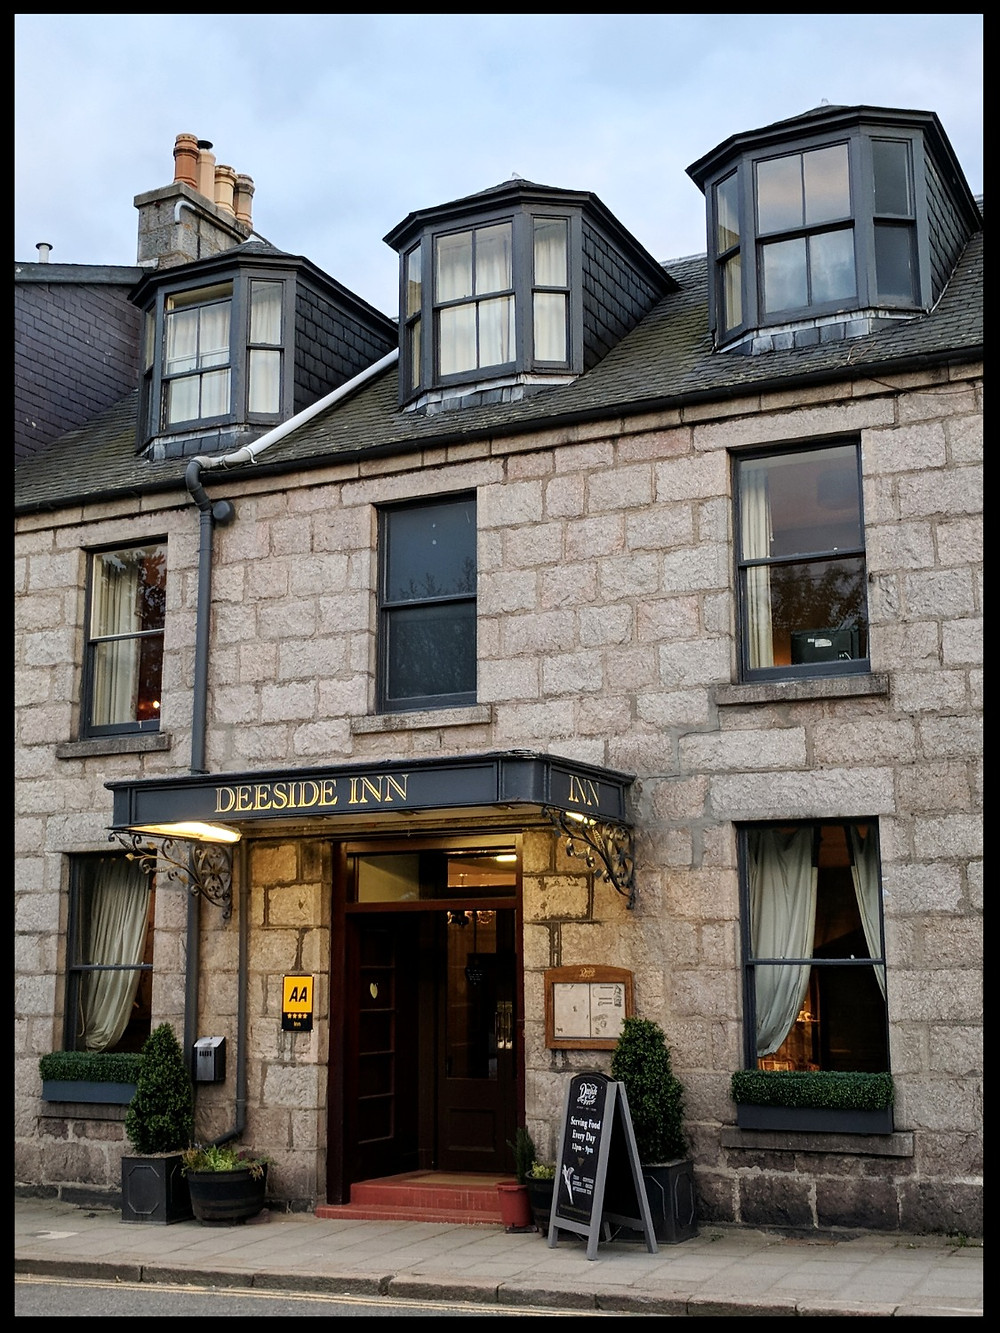 Deeside Inn, Ballatar, Scotland